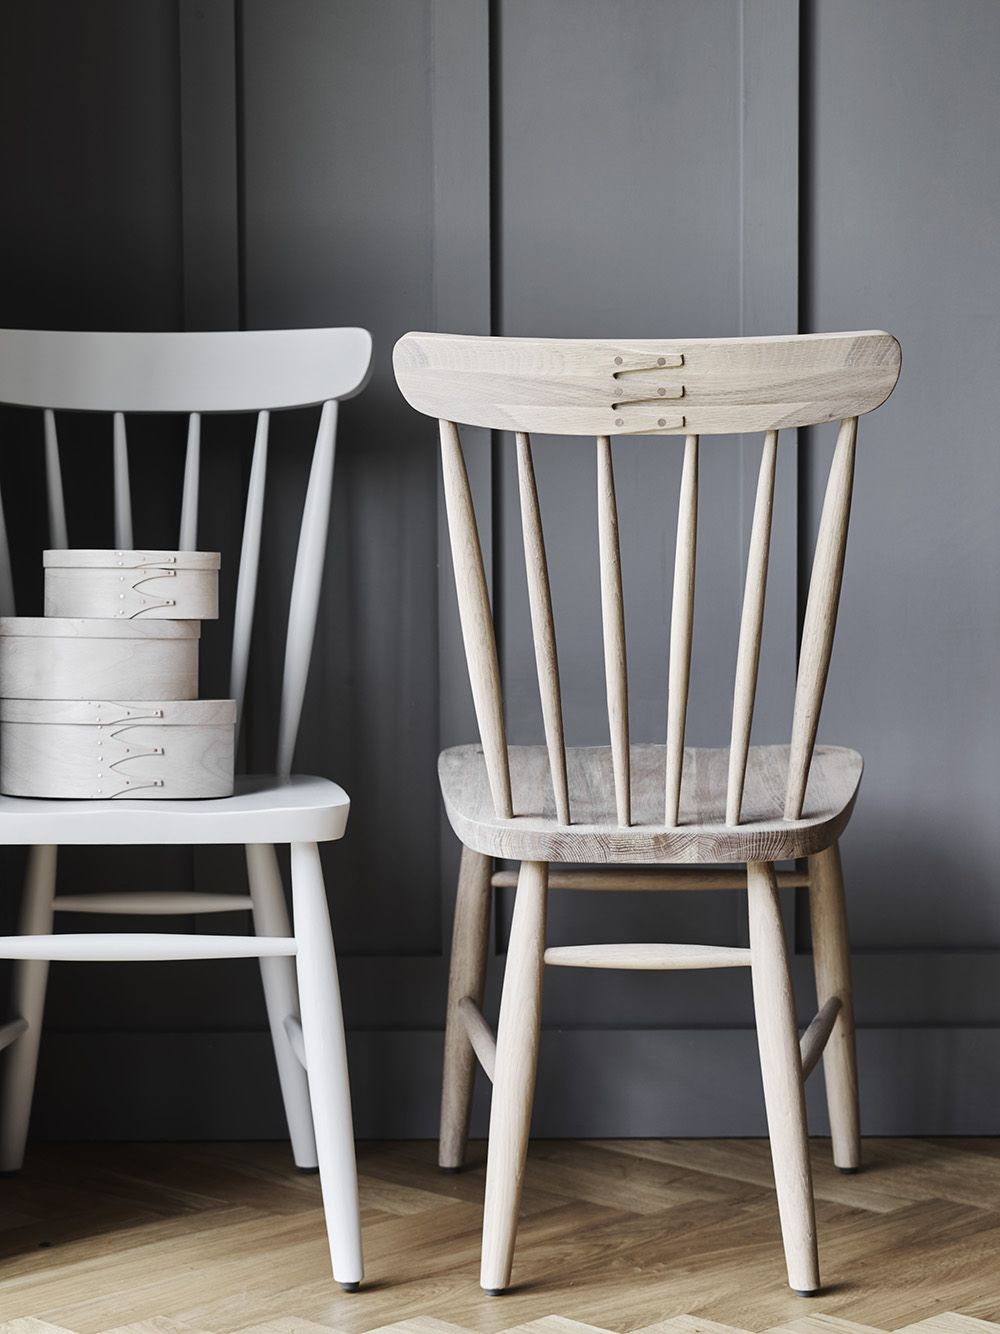 Gray painted dining chairs - Our New Shaker Oak Spindle Back Chair Is An Up To Date Version Of A Classic Country Style Oiled Oak 90h X 43w X 41d Cm Set Height From The Floor Pinterest